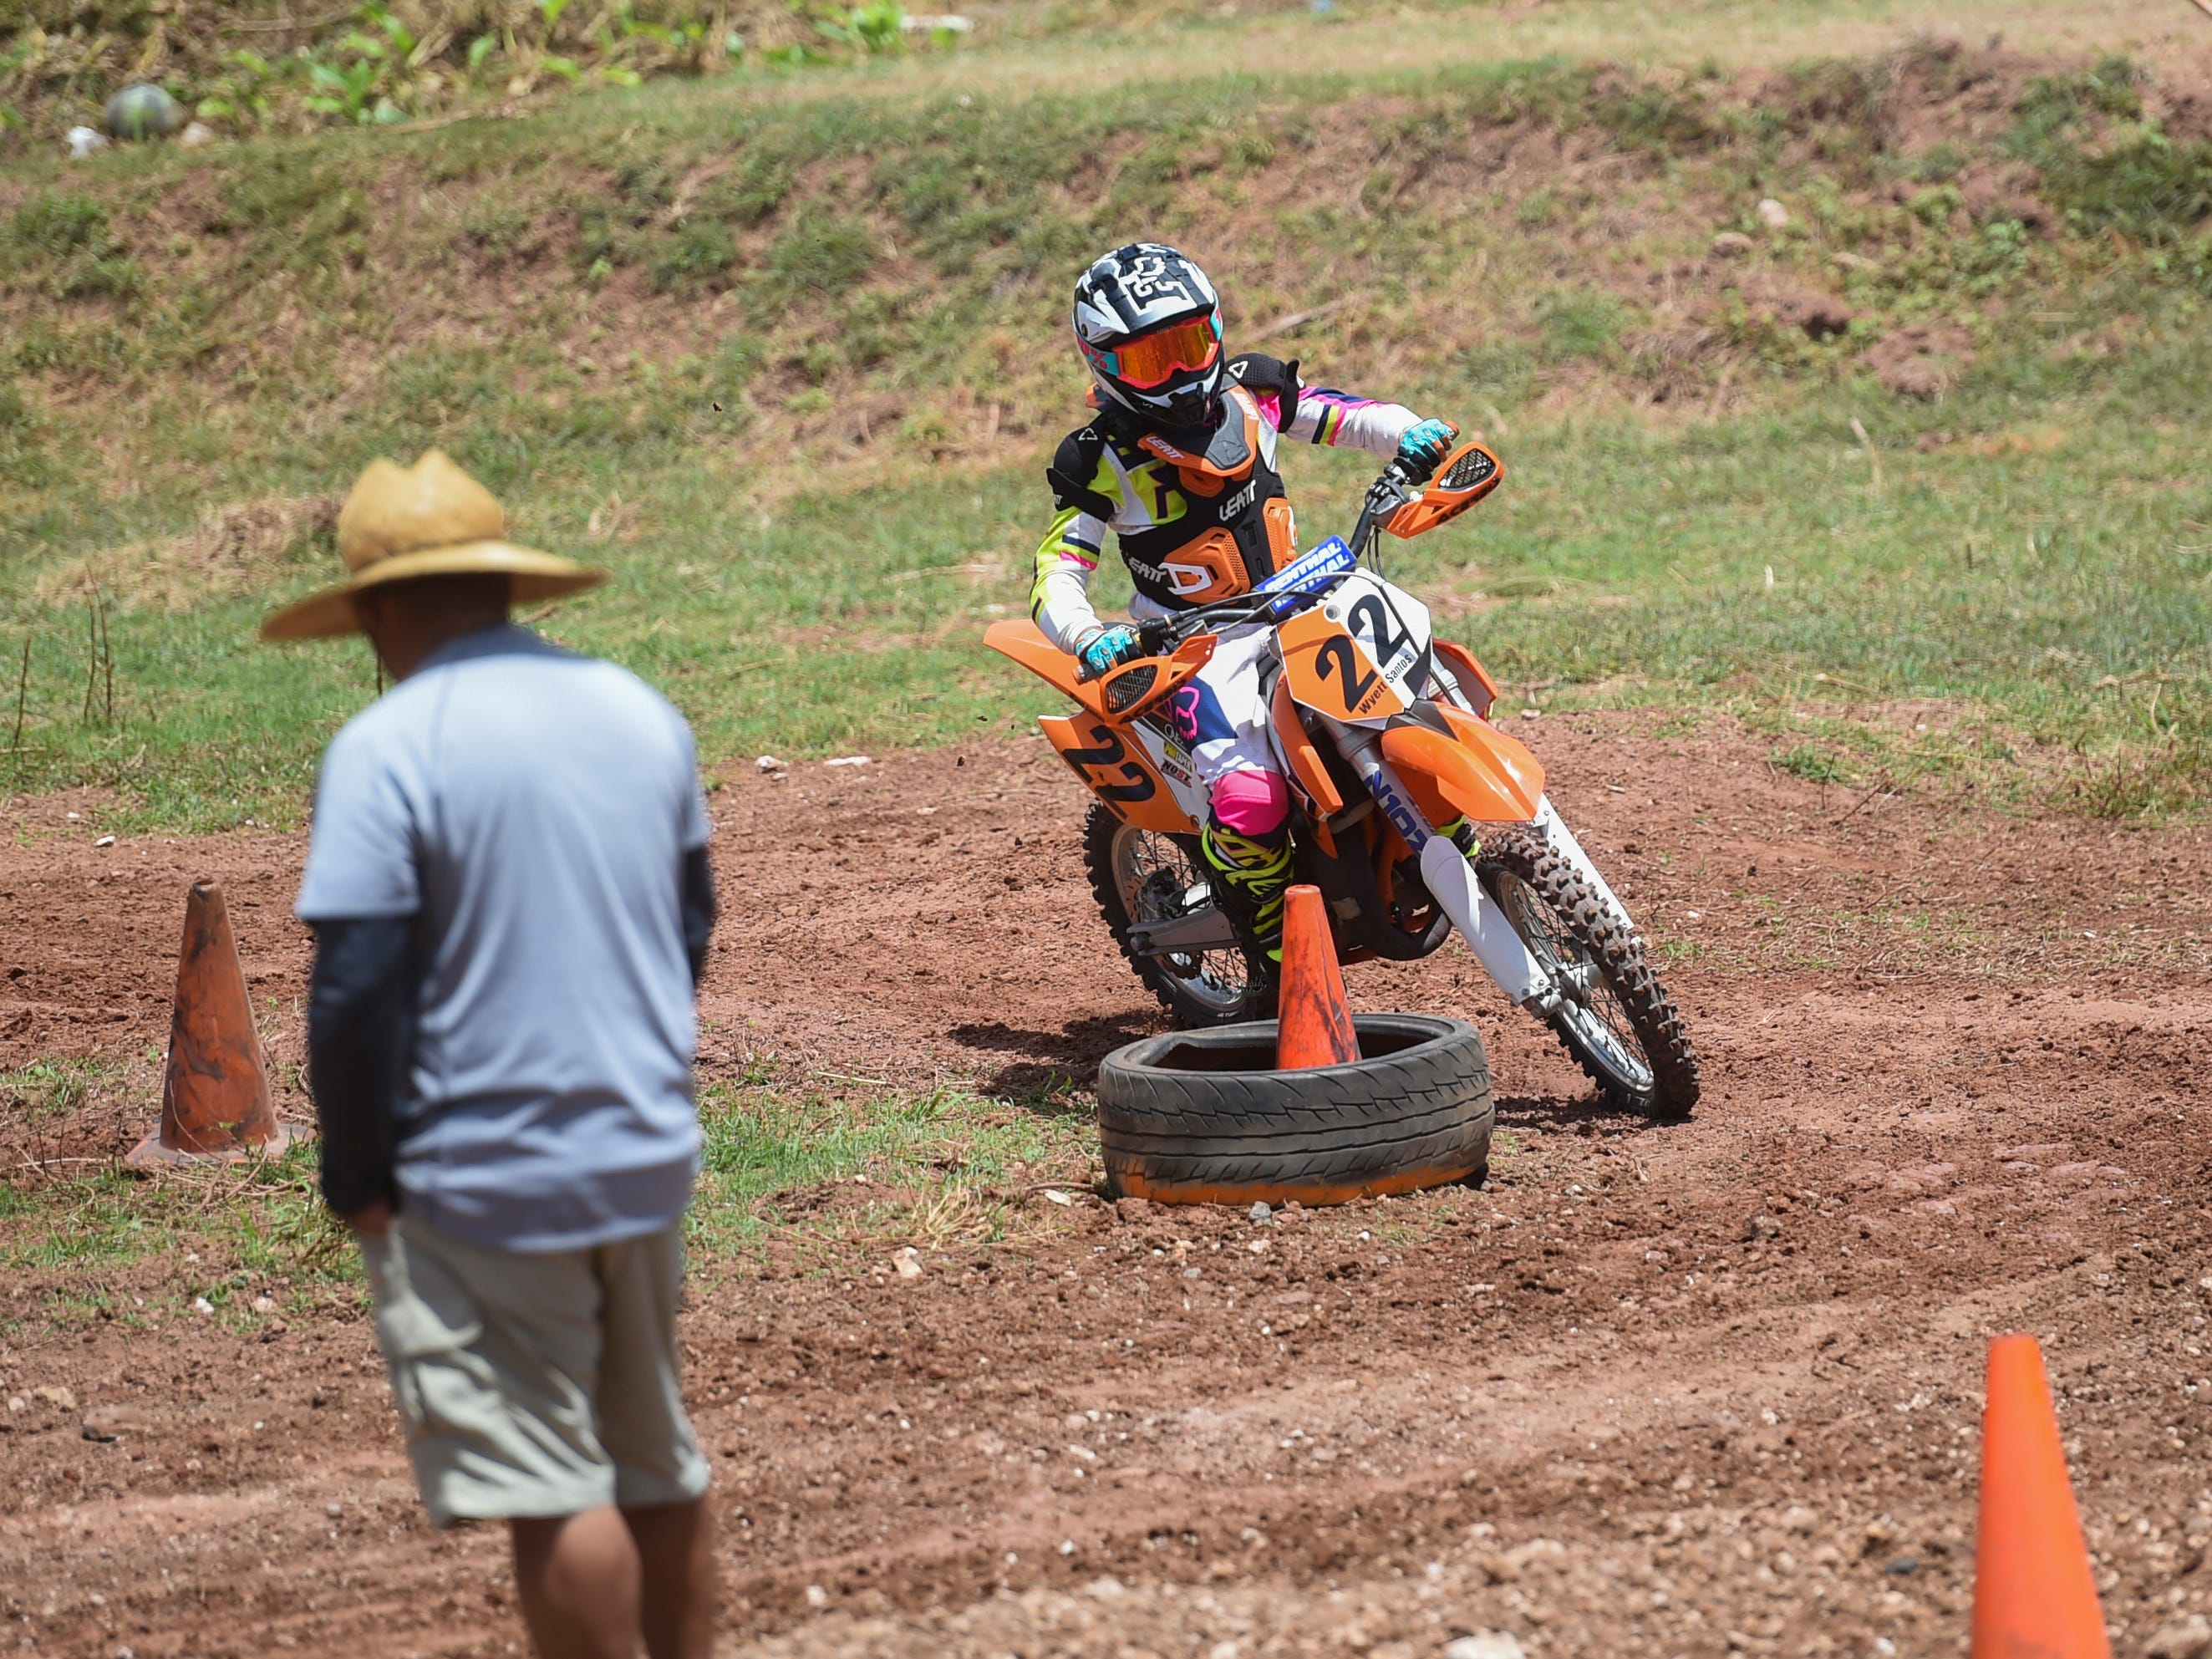 Wyett Santos races in a 85cc/150cc open kids minibike race during the Guam History and Chamorro Heritage Day Festival 2019 at Umatac Bay Park, March 10, 2019.